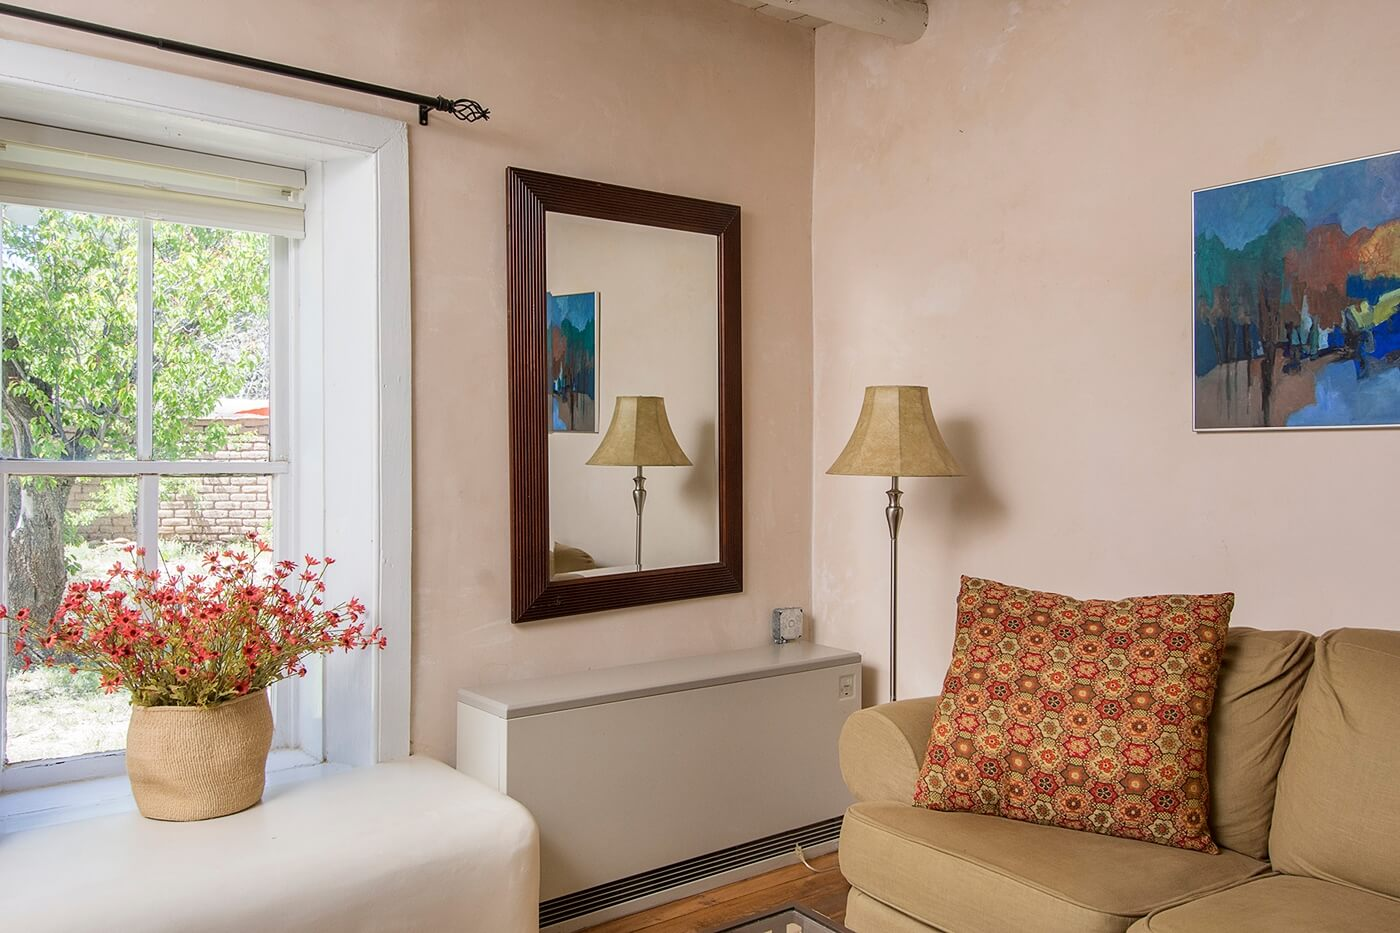 Taos Vacation Rental home clean and modern